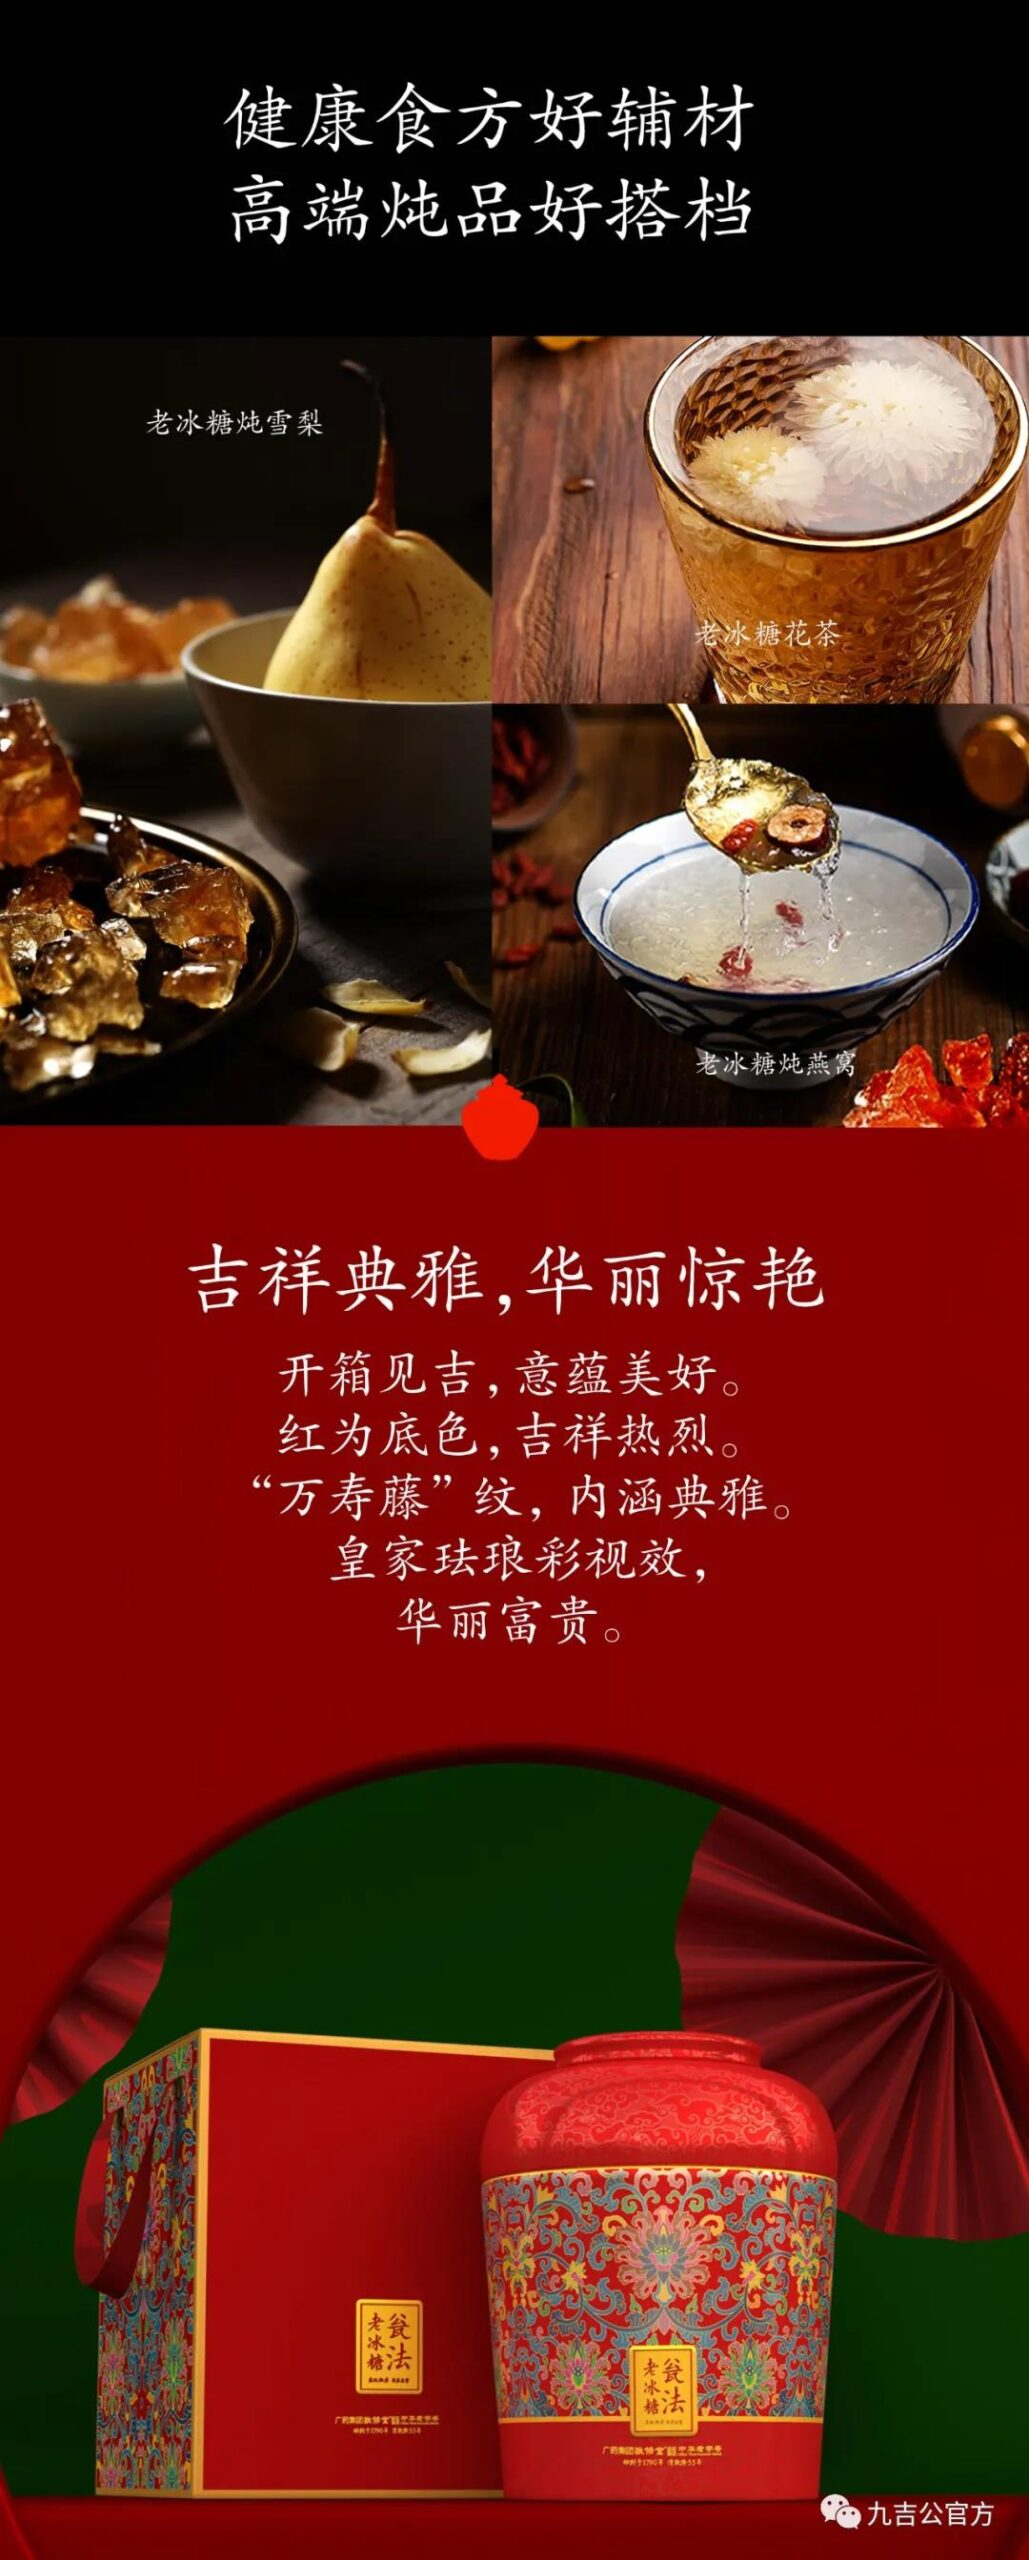 WeChat Image 20210708202351 scaled